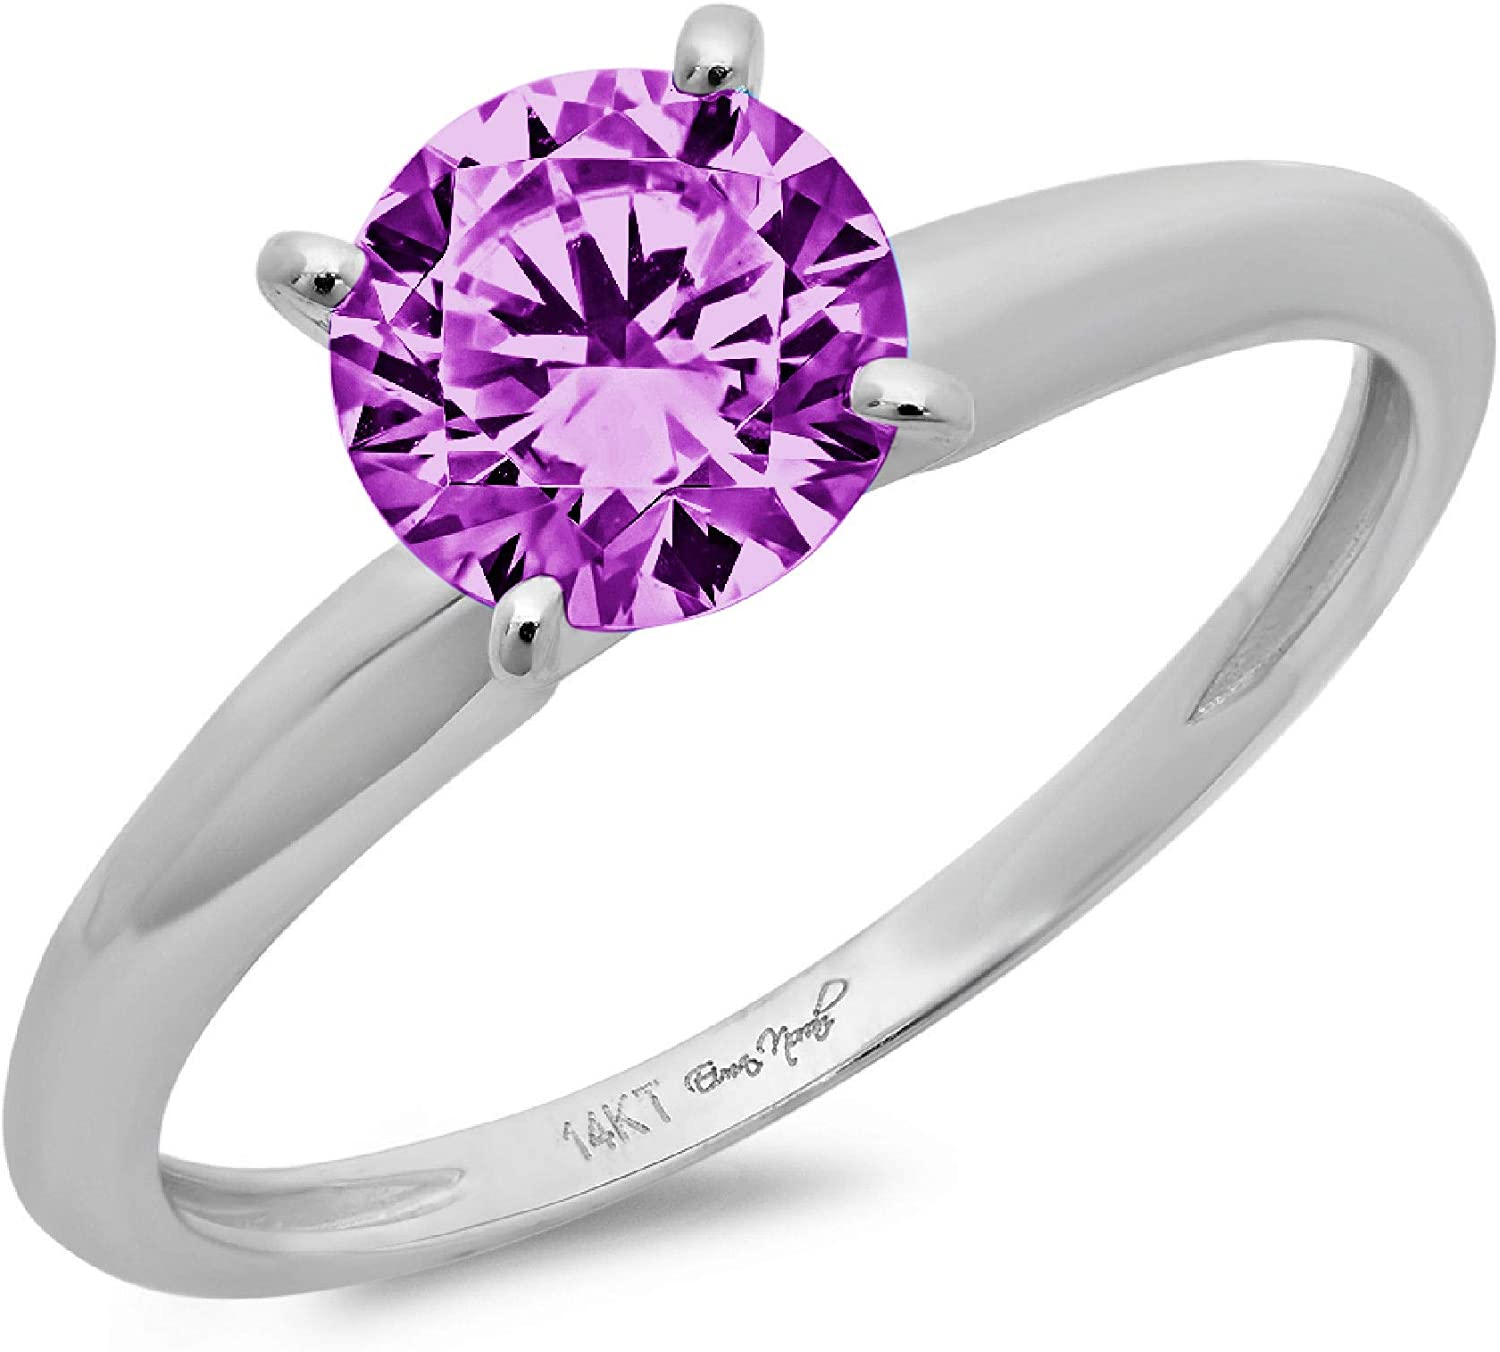 0.45 ct Brilliant Round Cut Solitaire Flawless Simulated CZ Purple Alexandrite Ideal VVS1 4-Prong Engagement Wedding Bridal Promise Anniversary Designer Ring in Solid 14k White Gold for Women